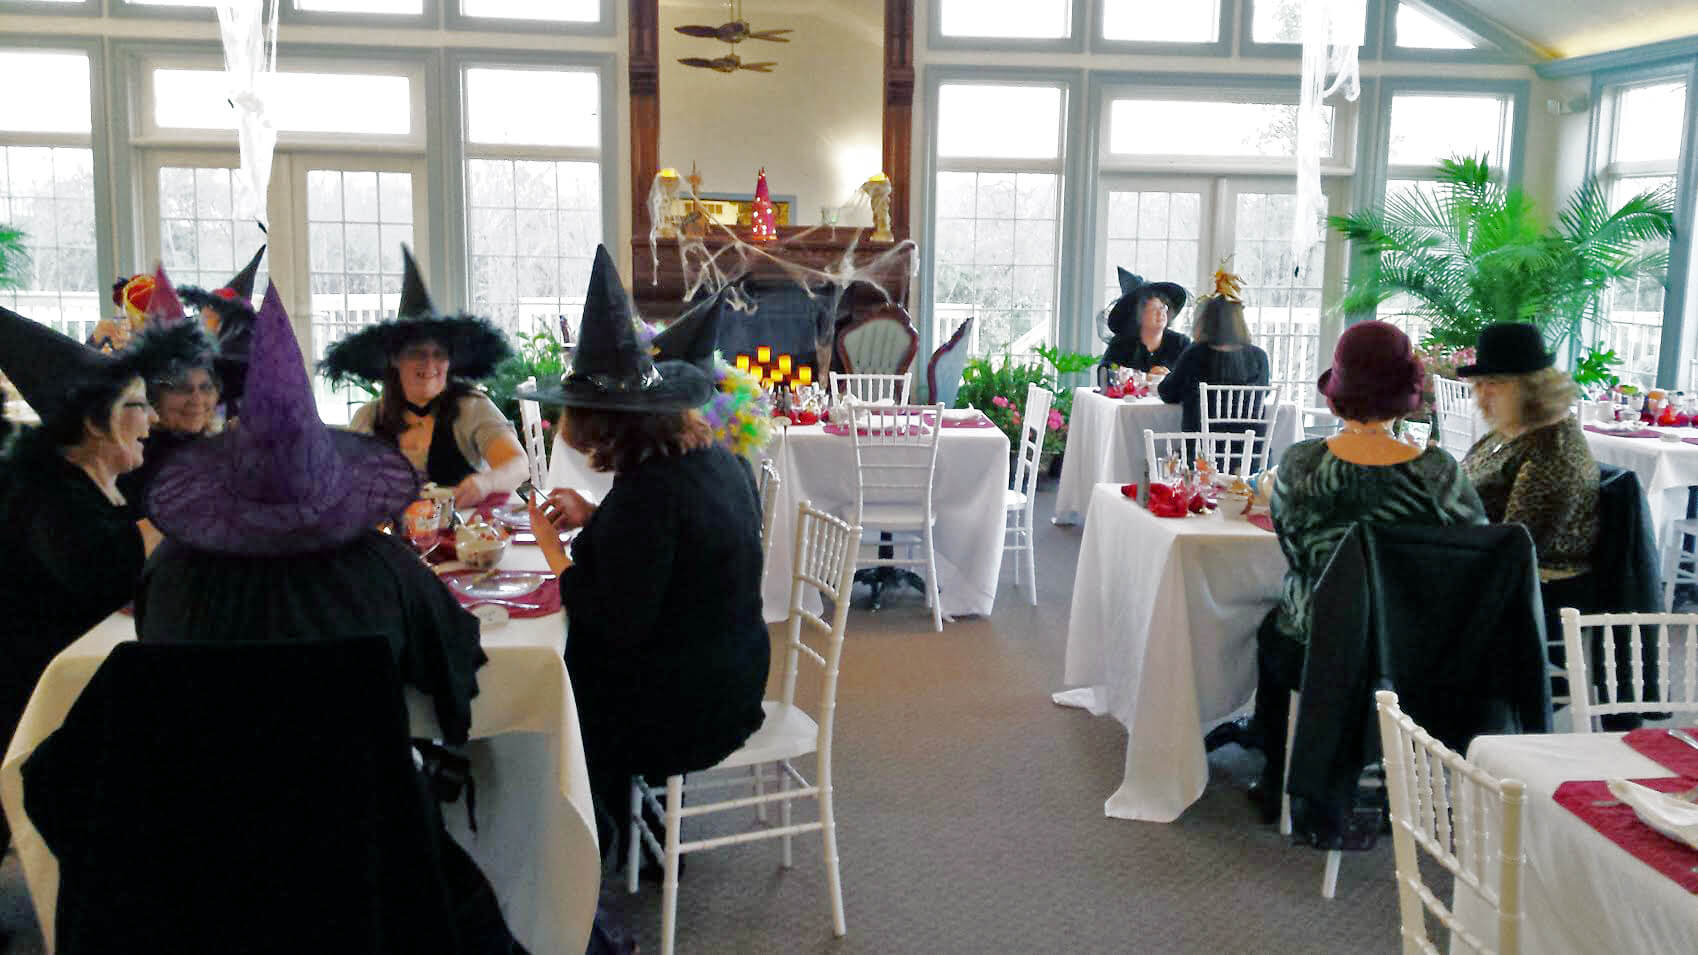 Phrase matchless... Witches tea party good